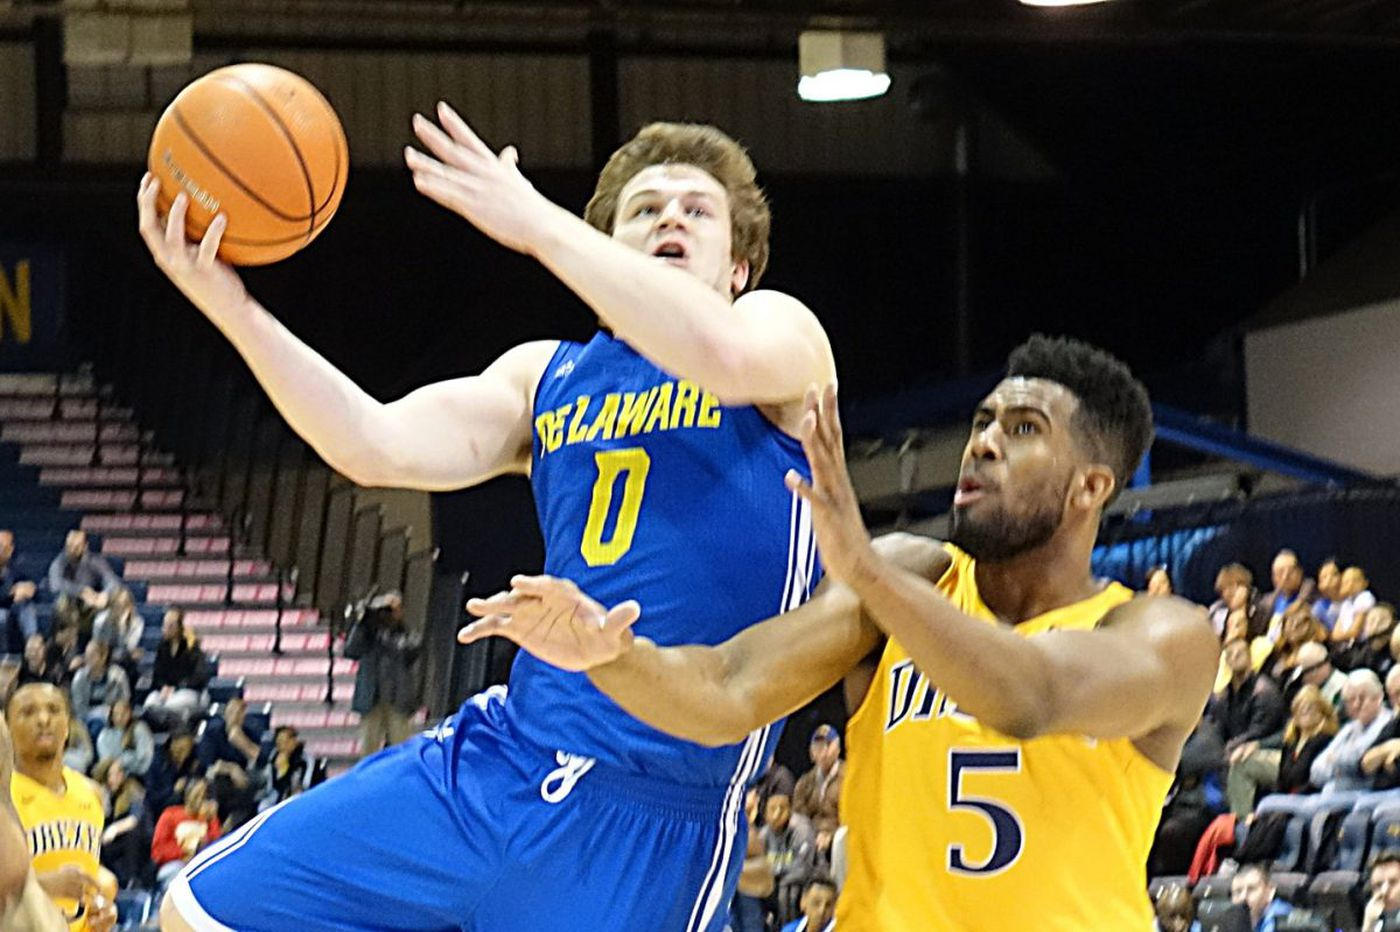 Drexel stuns Delaware by overcoming 34-point deficit in record win